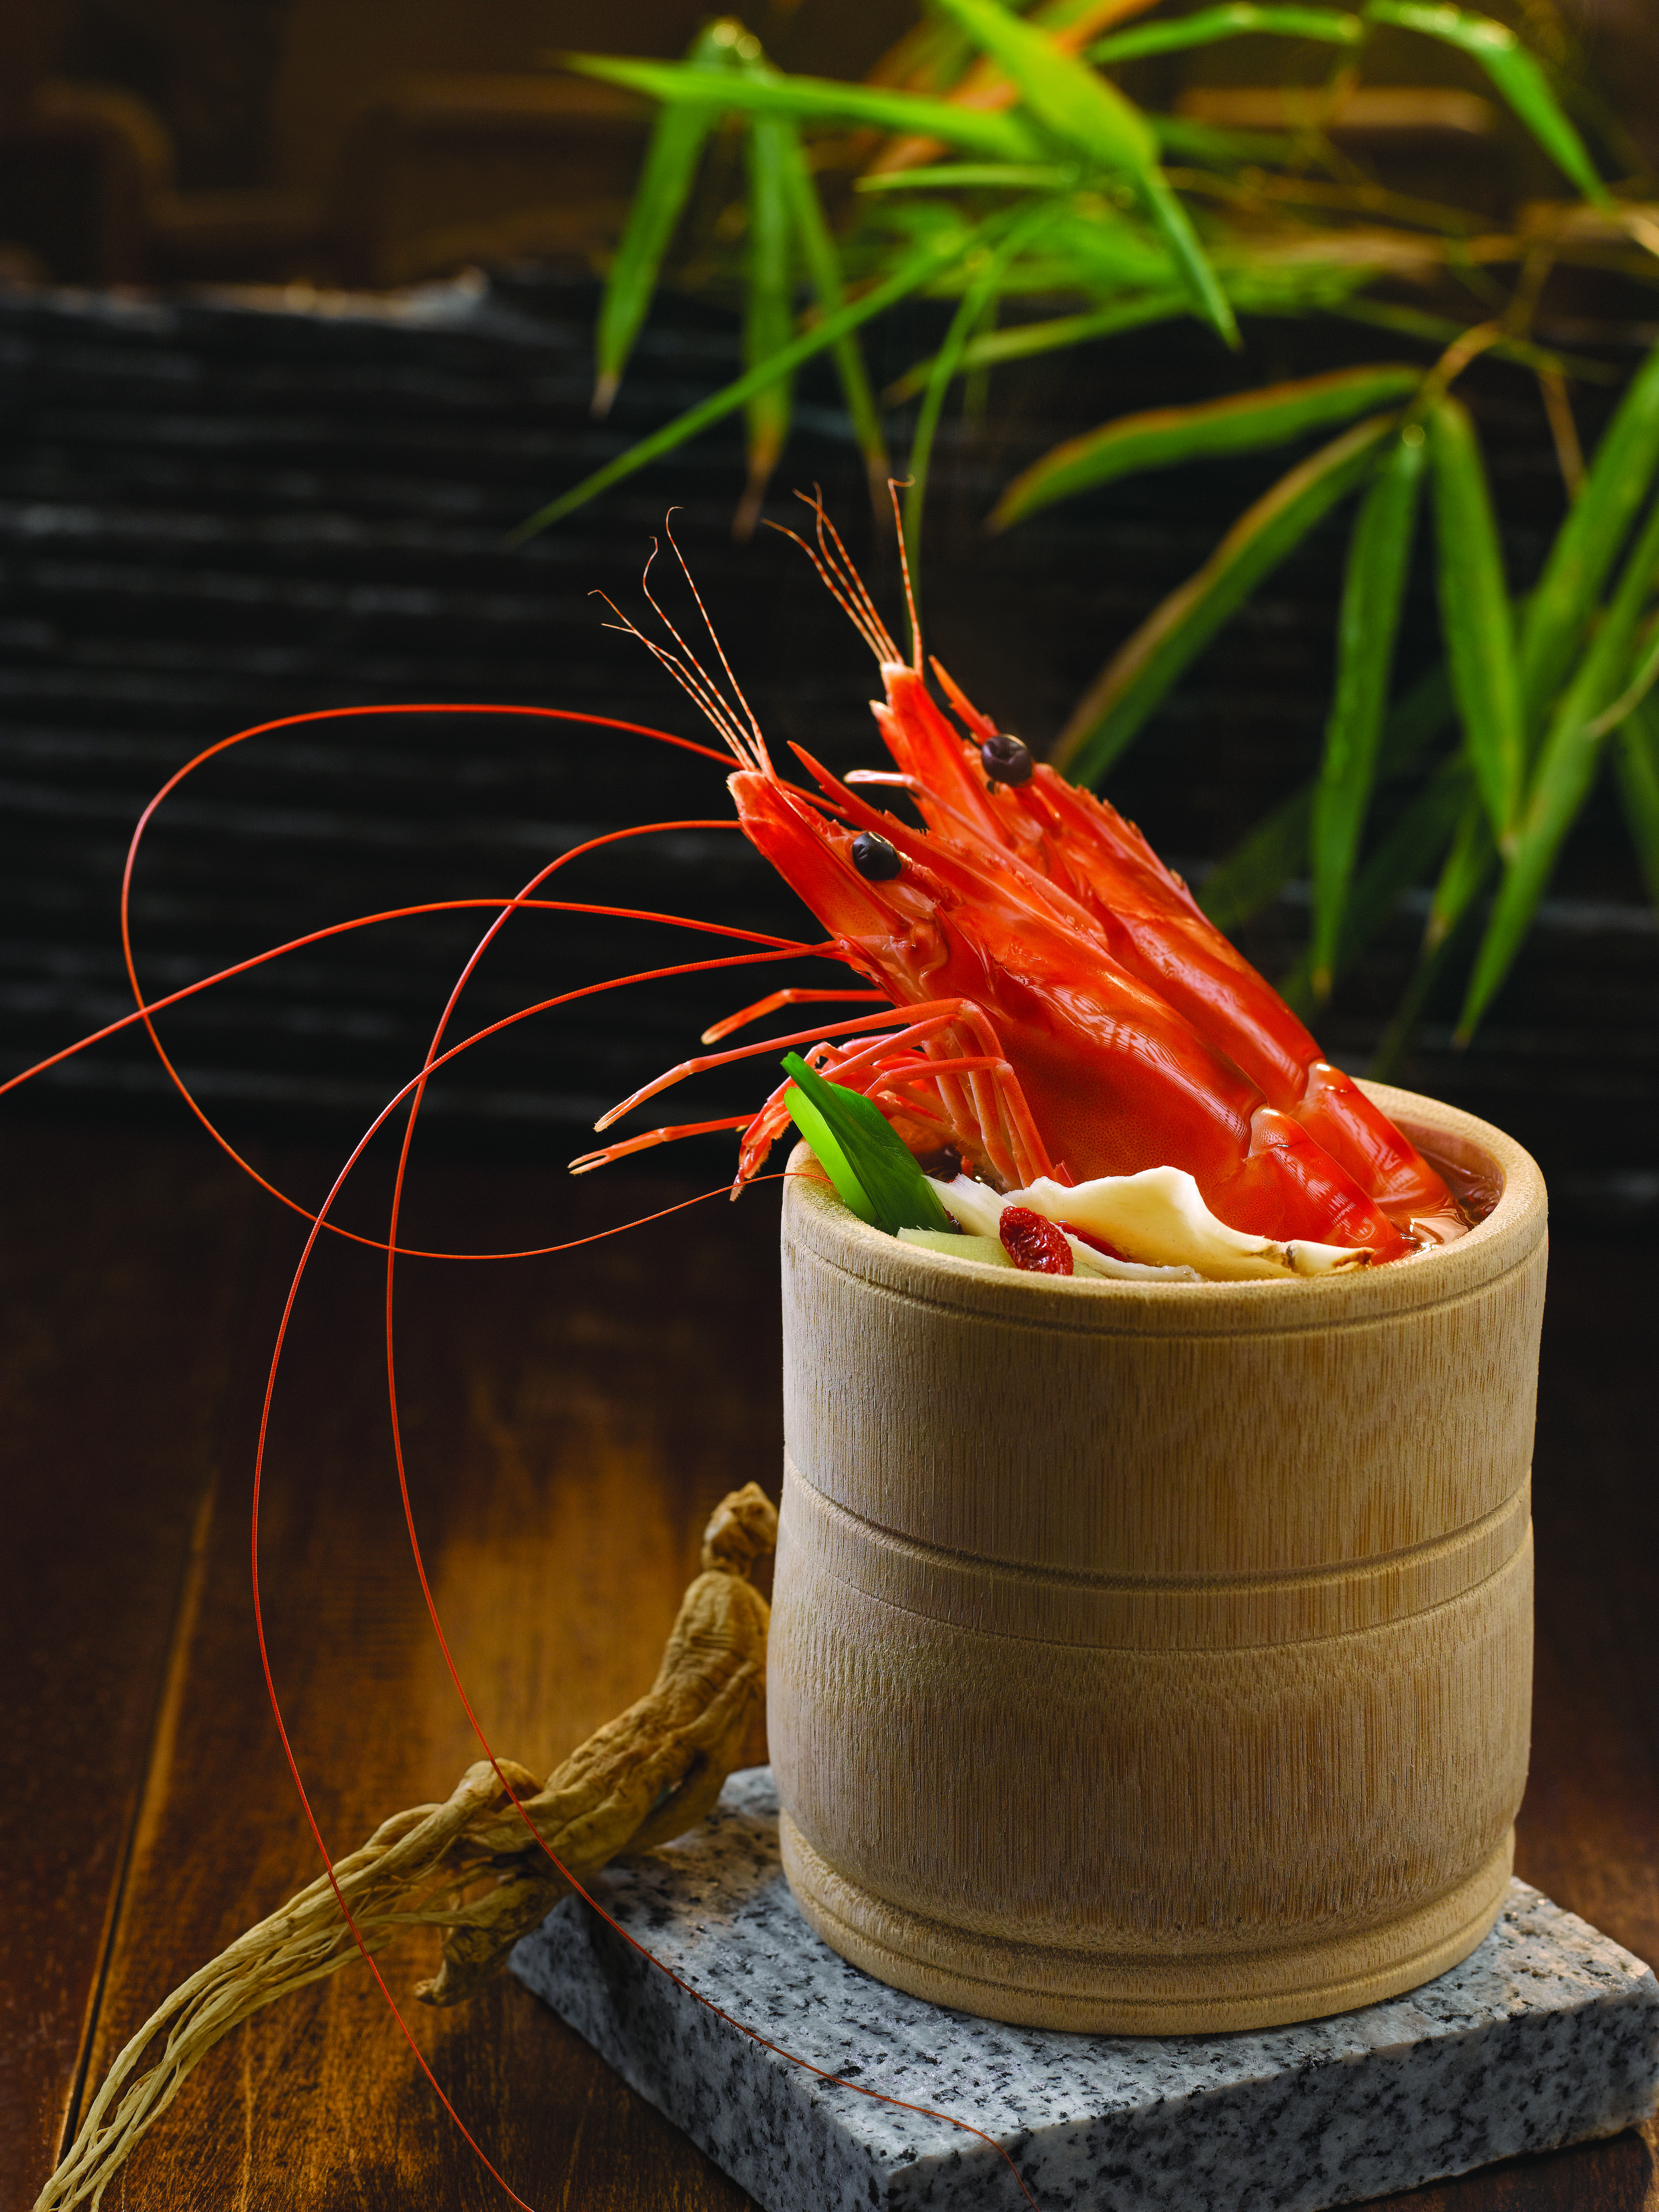 Bamboo Herbal Prawn A Pair Of Juicy Prawns Cooked In A Nourishing Wine Stock Infused With The Revitalising Essences Of Ang Herbalism Tasting Moscow Mule Mugs